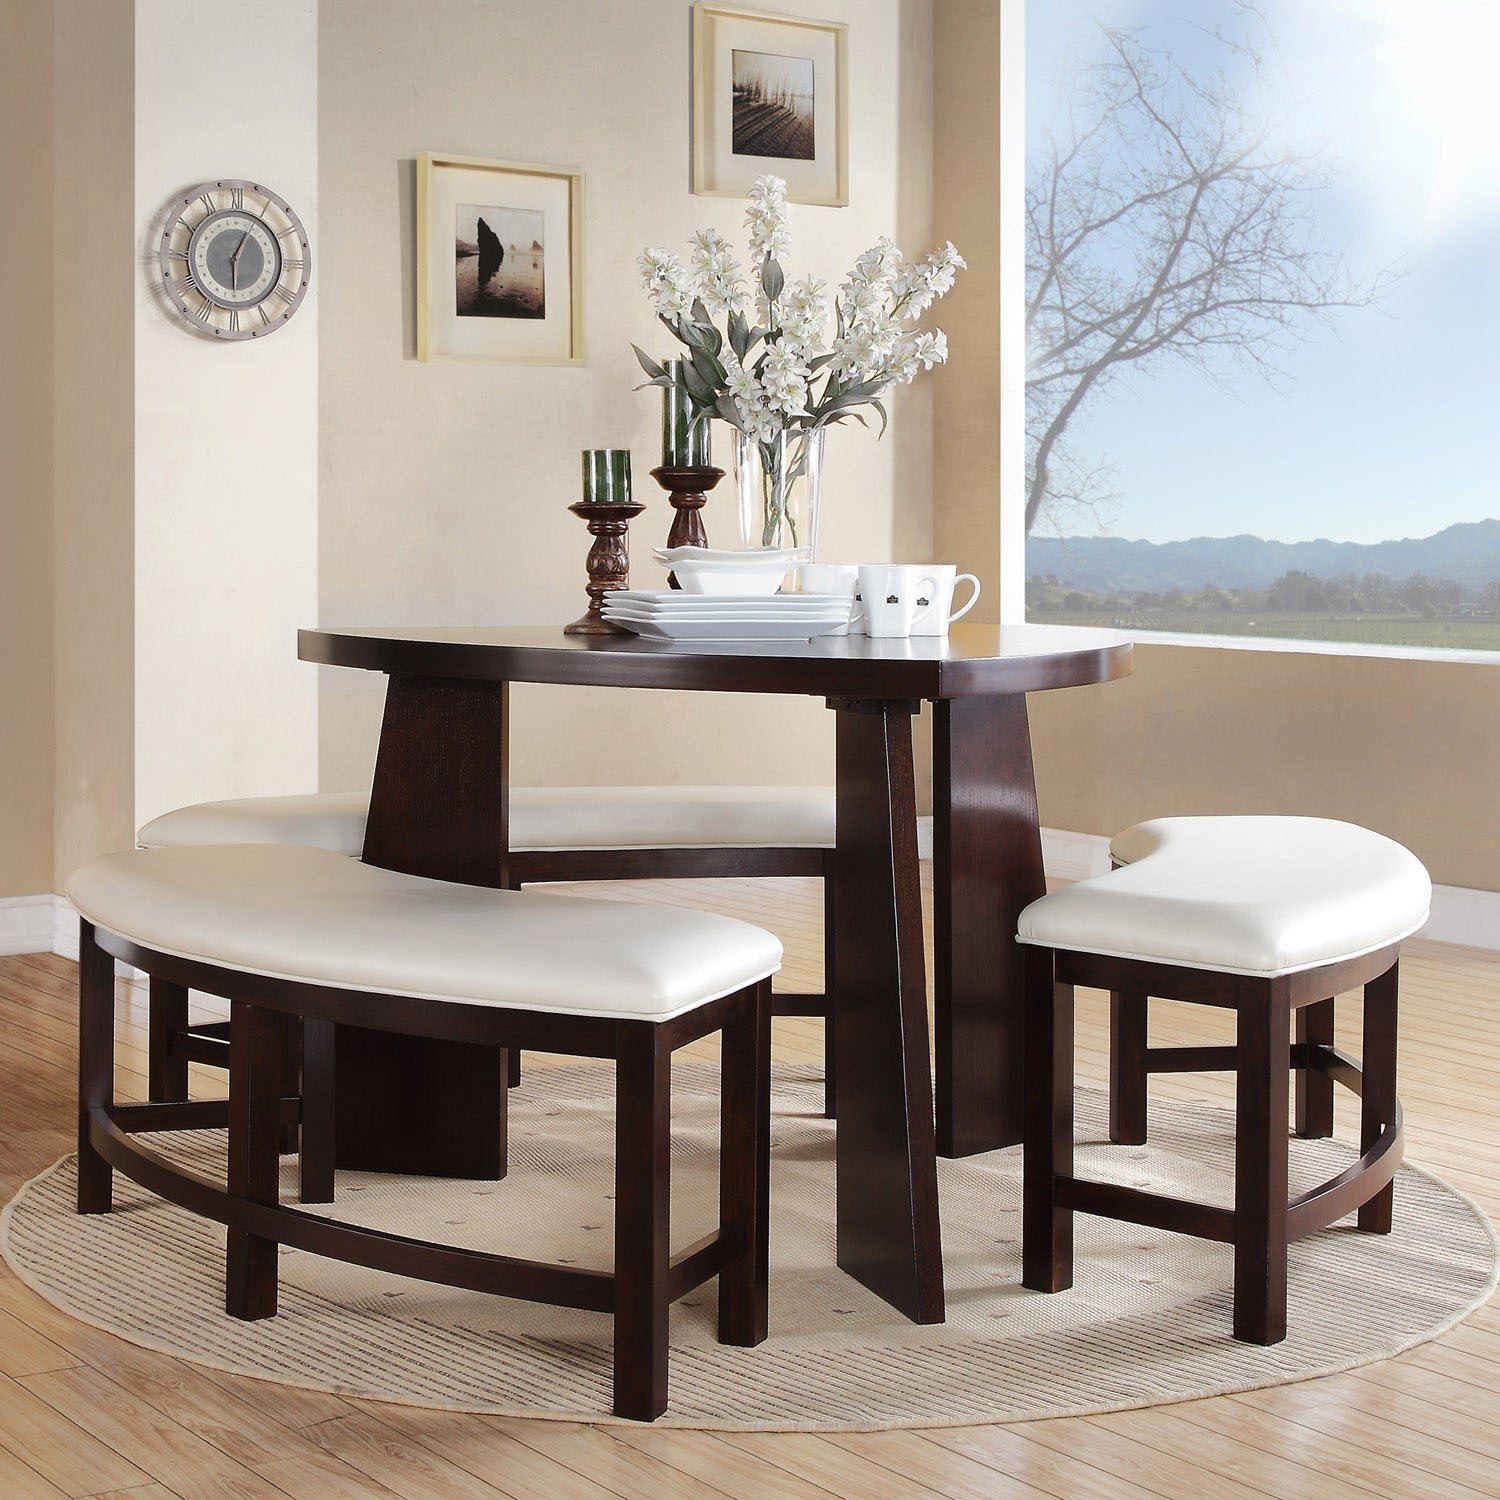 Paradise Merlot Triangle Shaped 4 Piece Dining Set By Inspire Q Bold Overstock 4401060